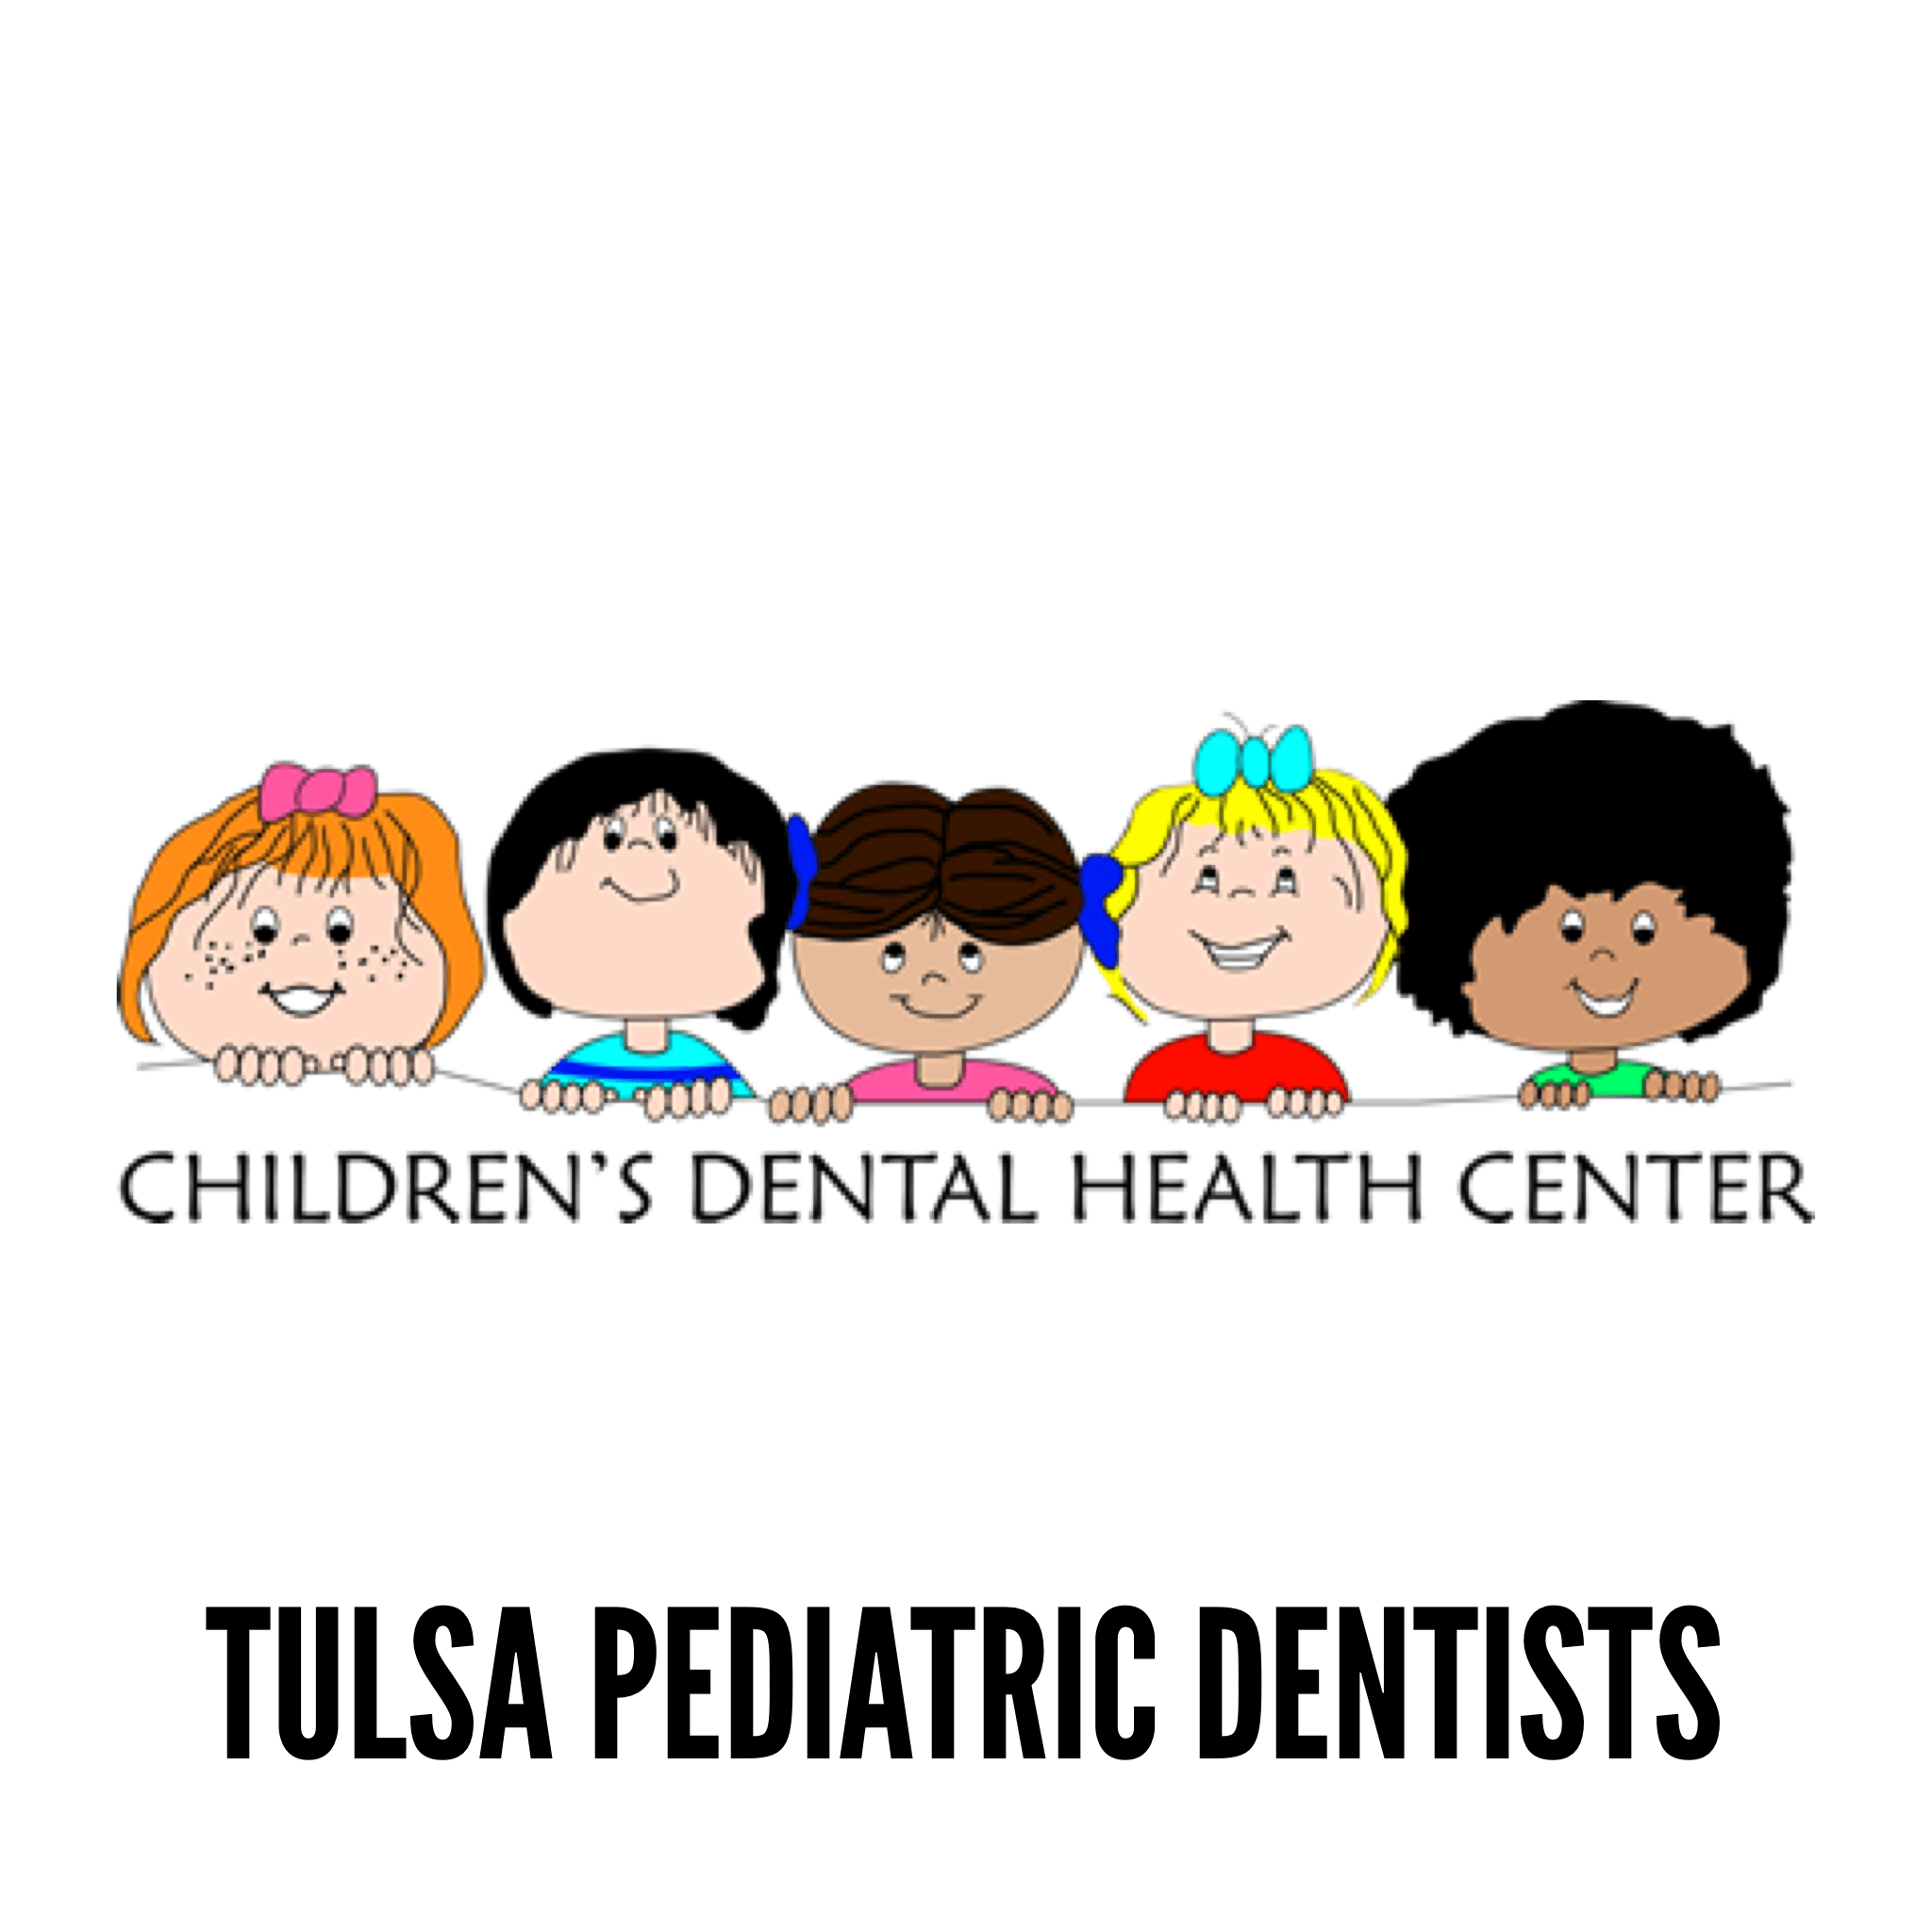 Tulsa pediatric dentist